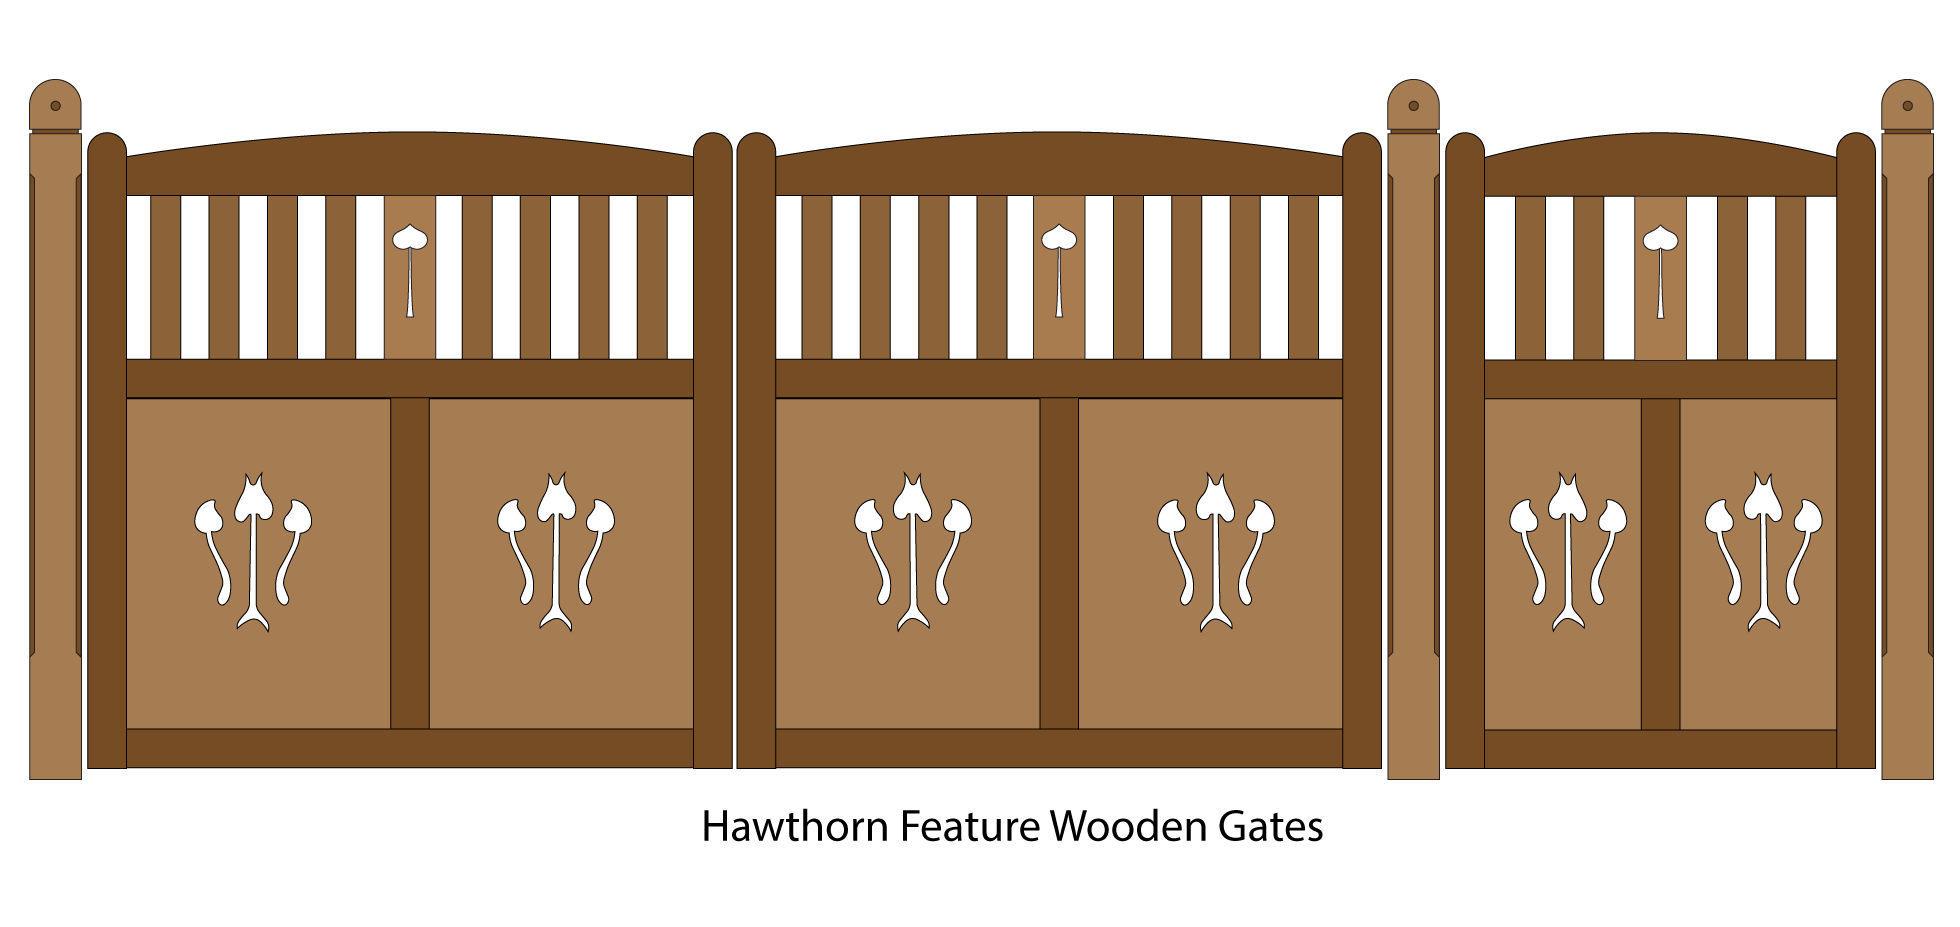 Hawthorn Feature Wooden Driveway and Pedestrian entrance gates